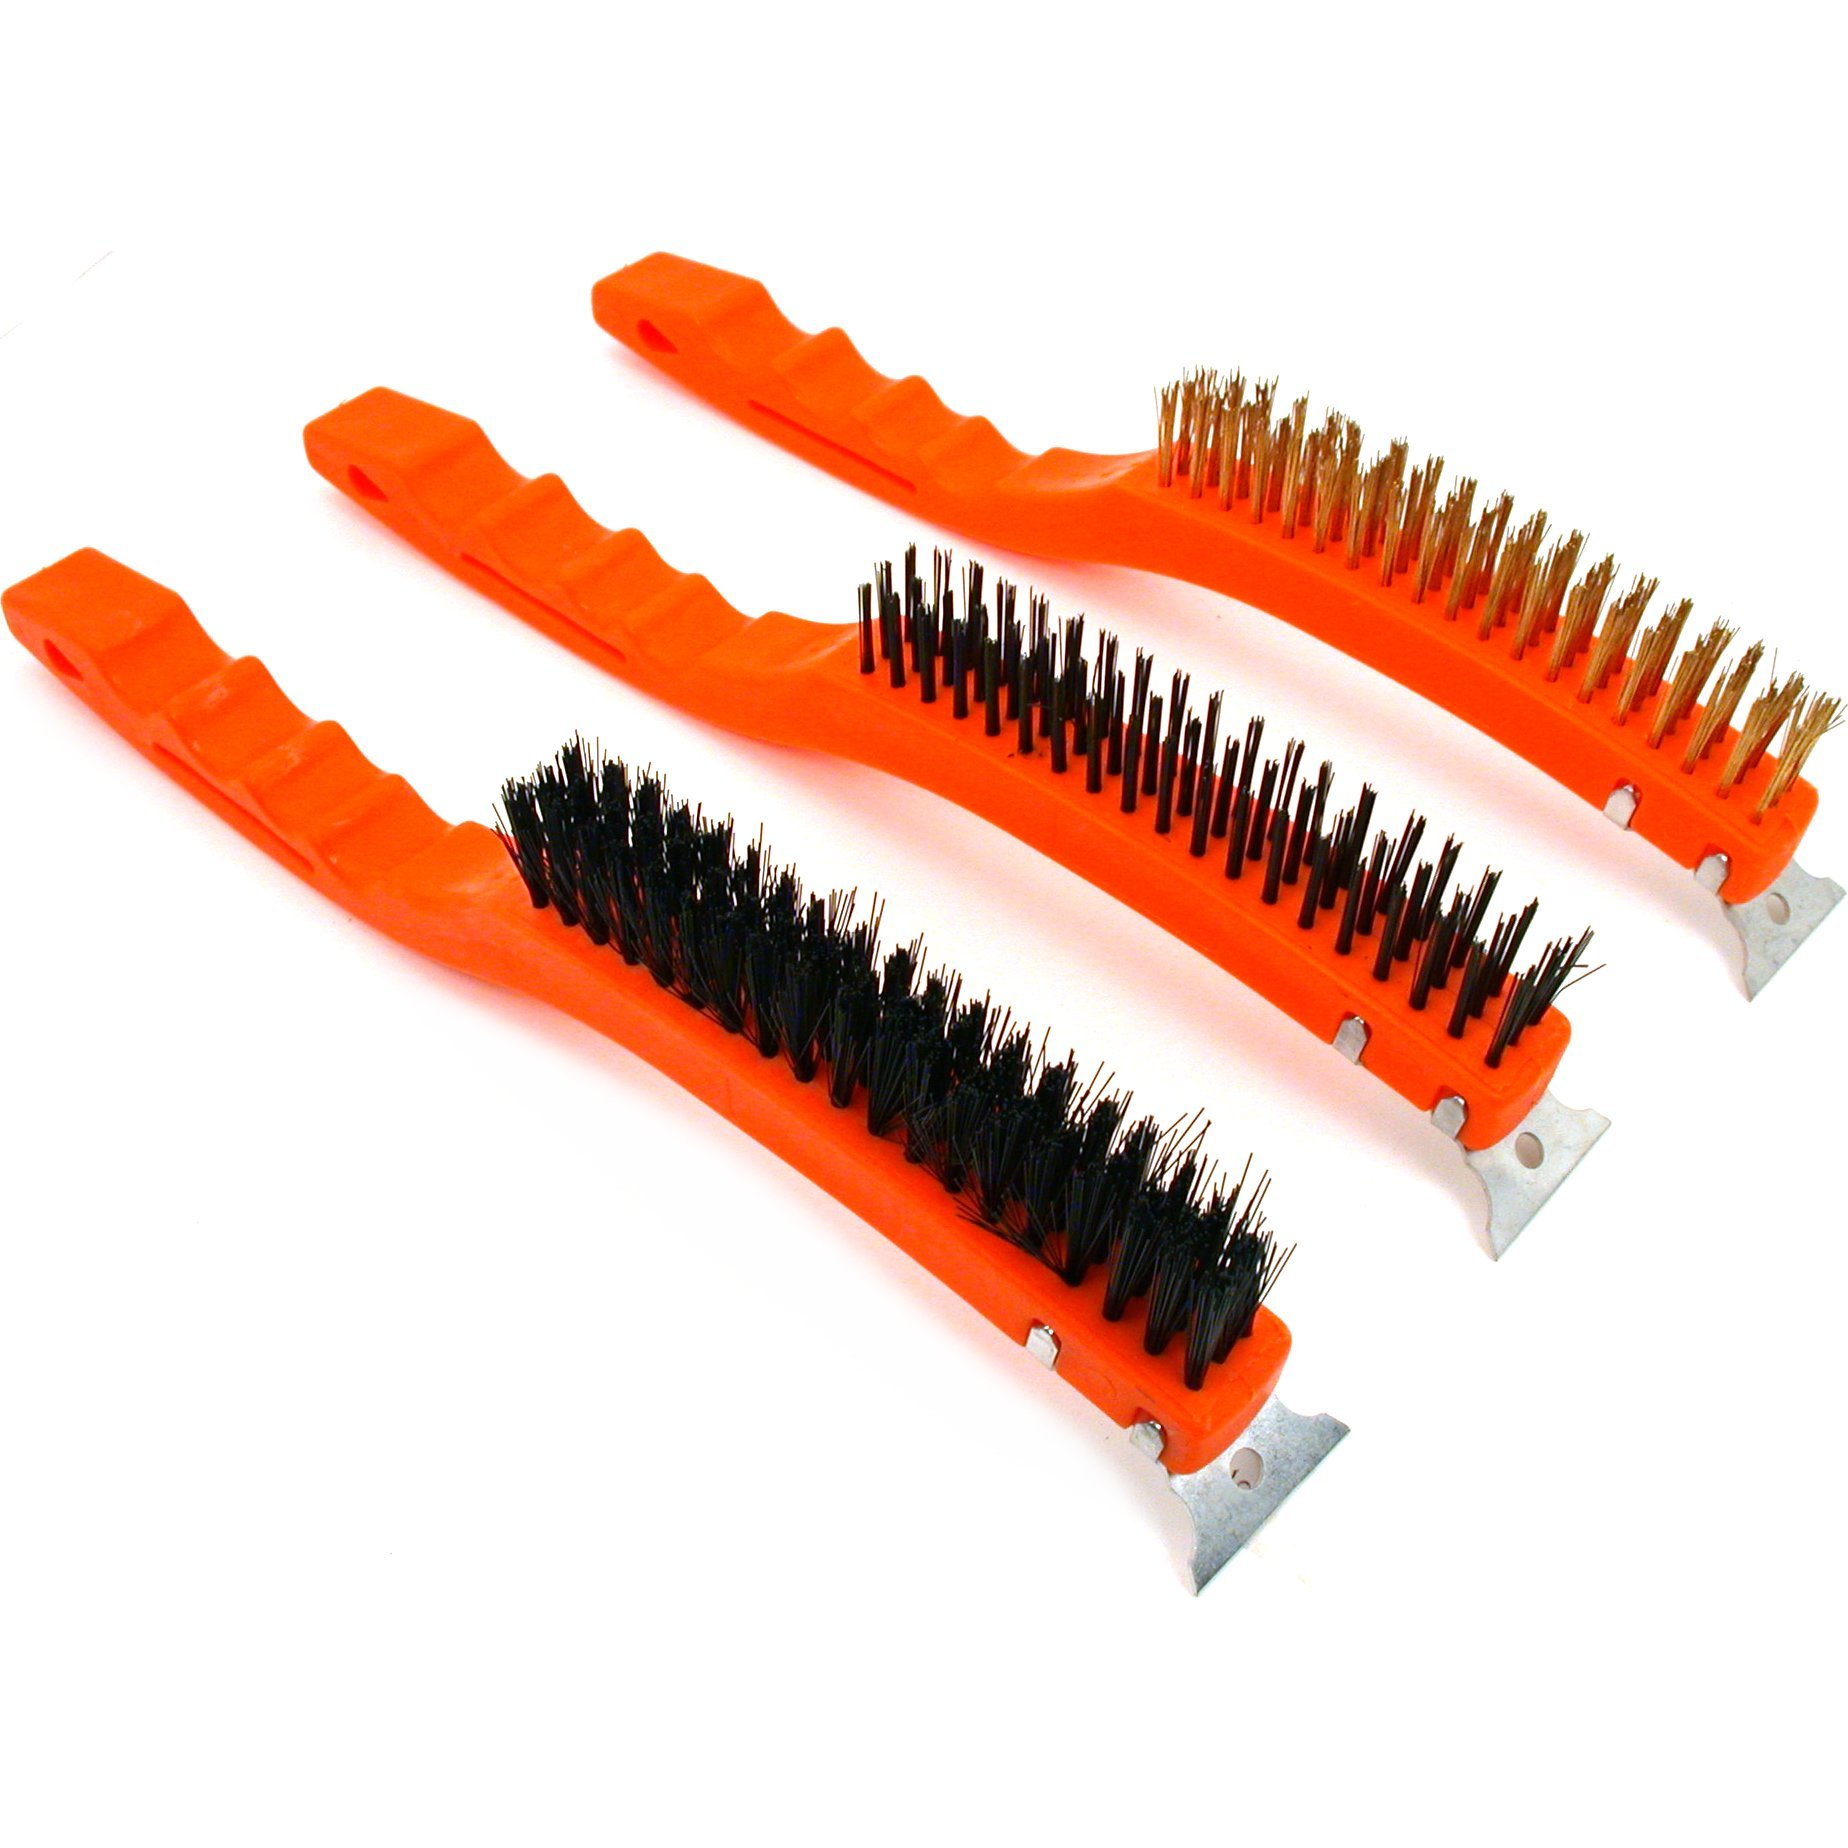 3 Brass Nylon Steel Cleaning Scraper Brushes Shop Tools by Generic